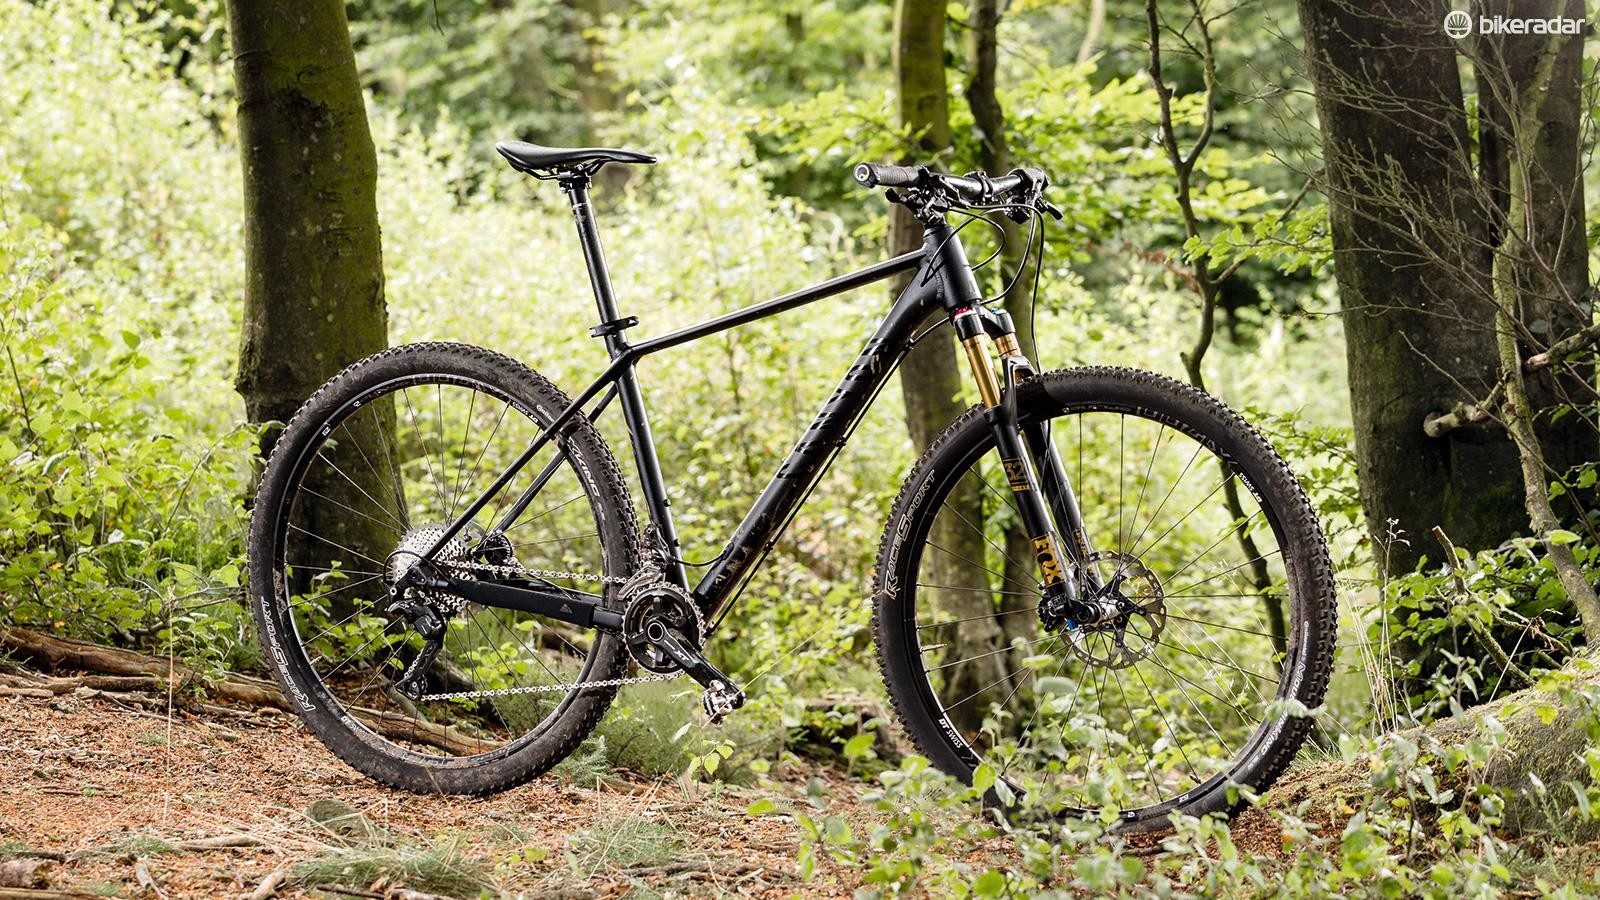 The Canyon Grand Canyon AL SLX 9.9